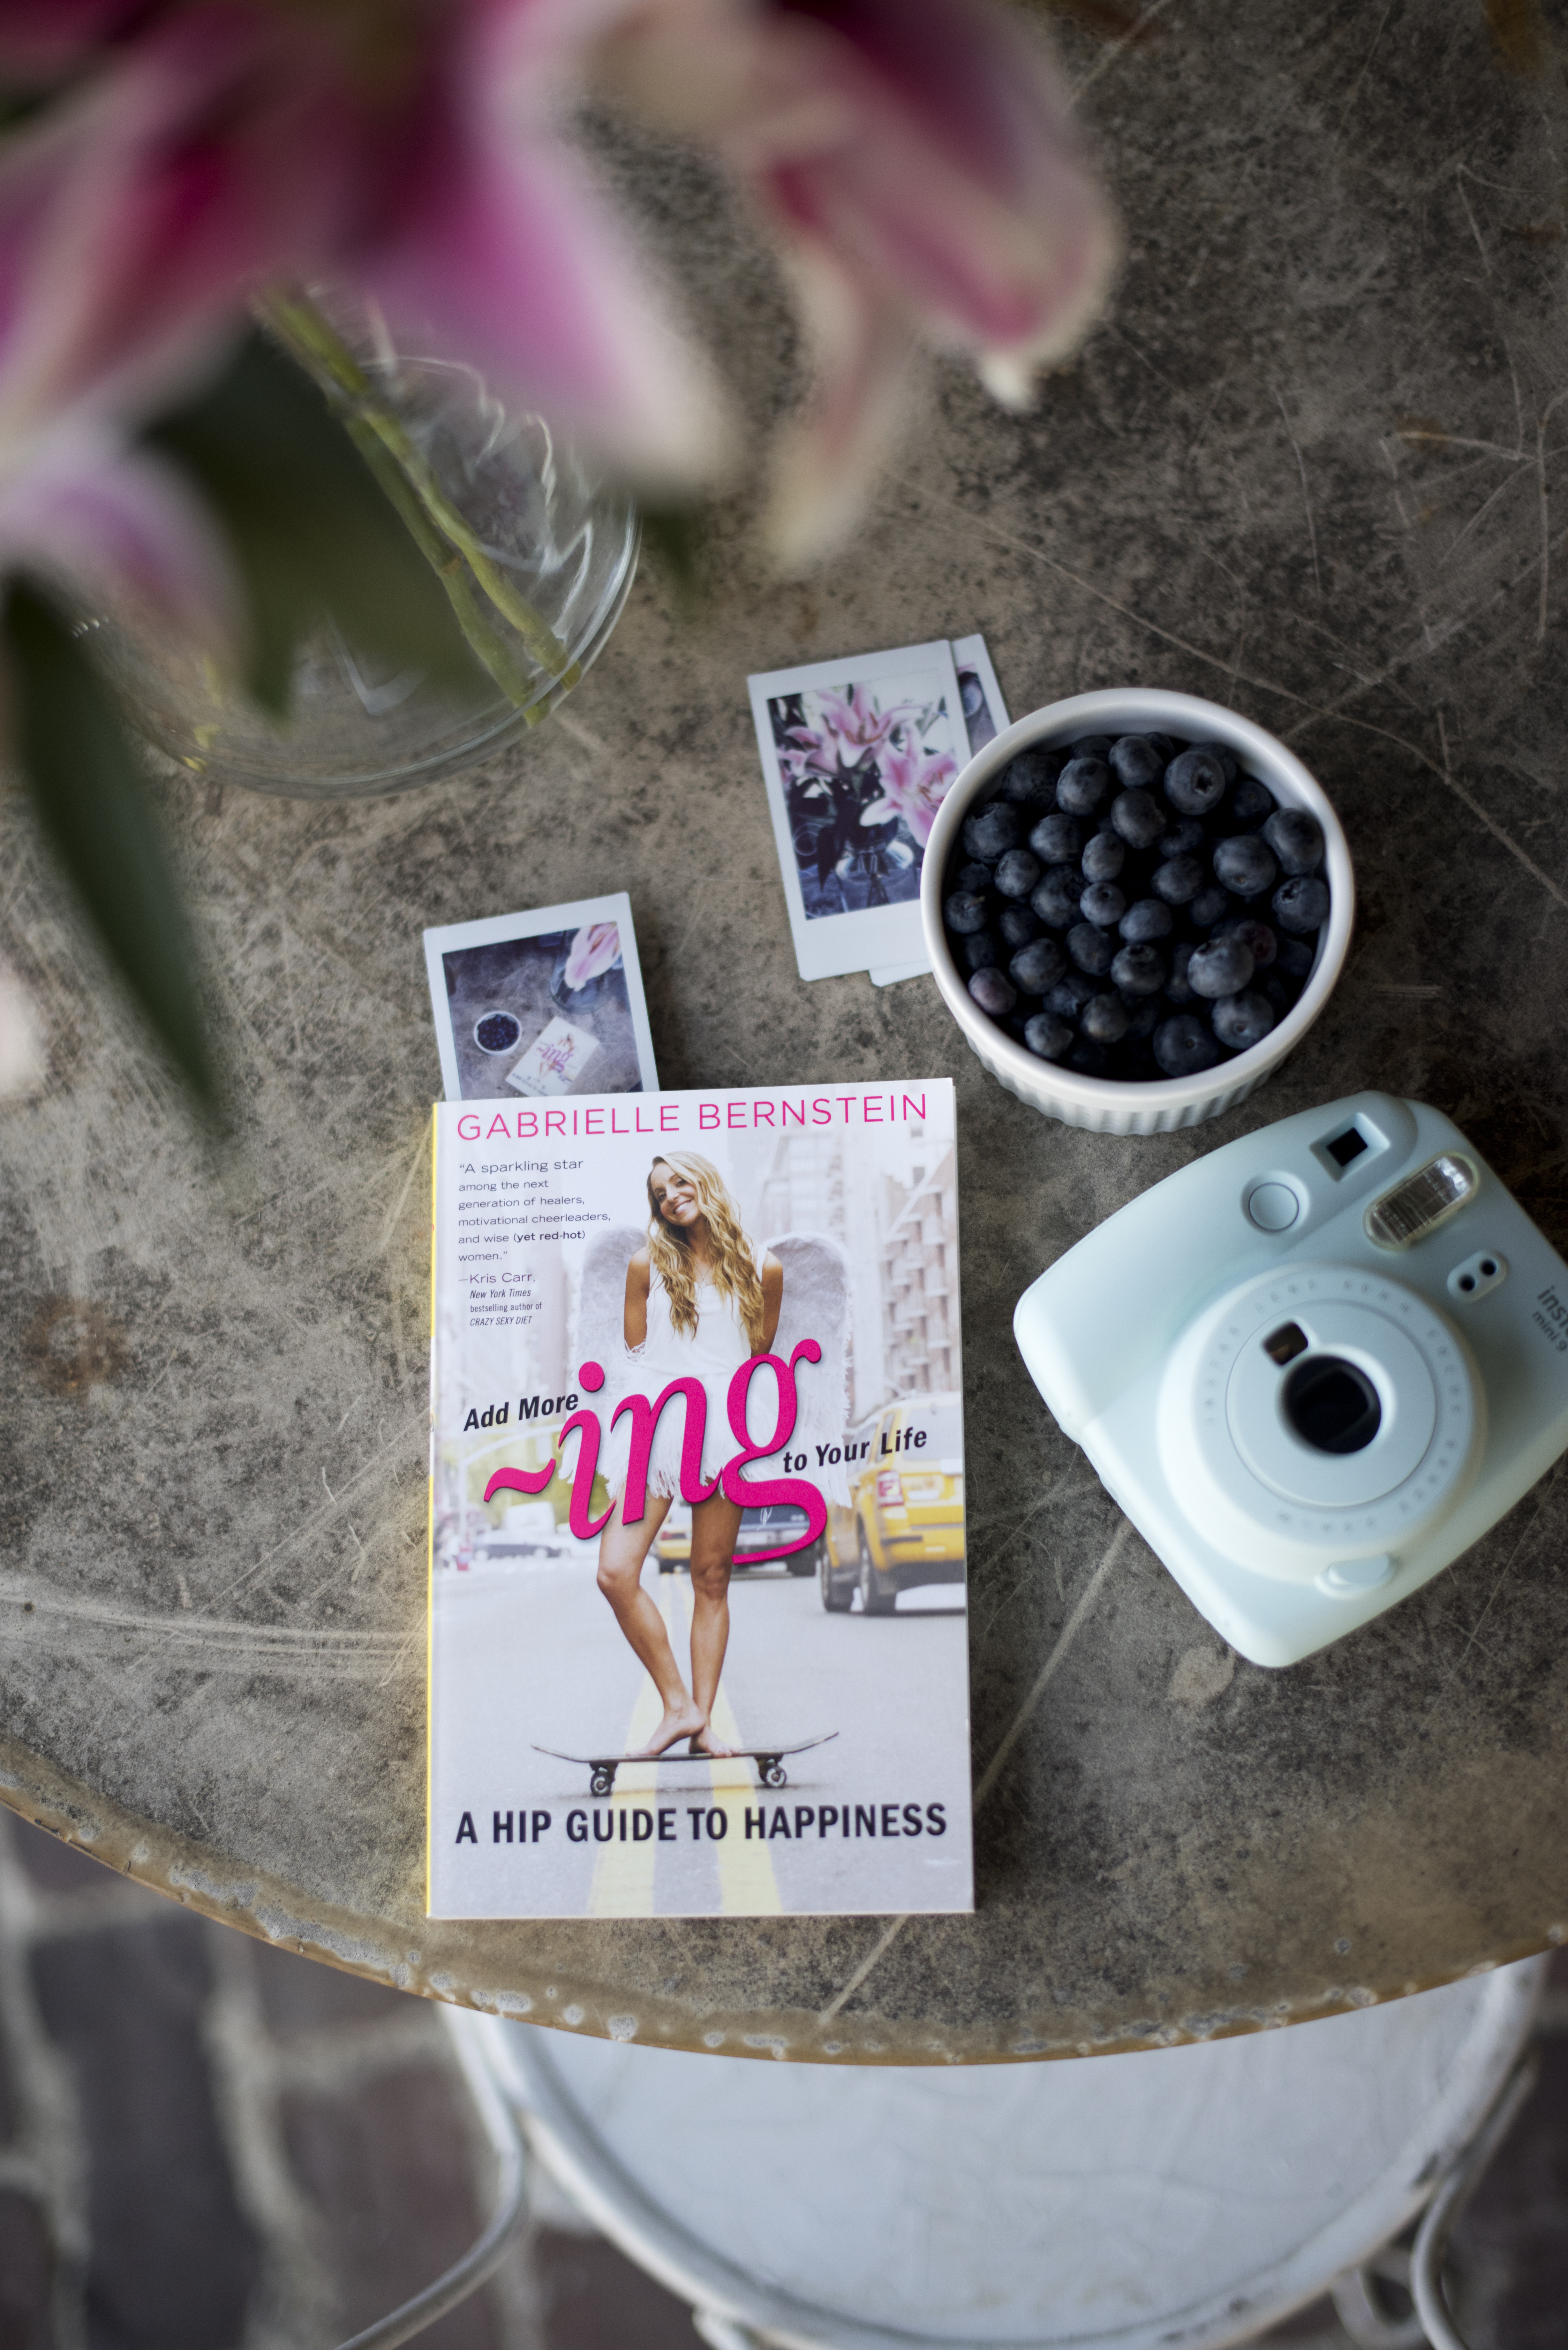 Add More ~ing to Your Life: A Hip Guide to Happiness, by Gabrielle Bernstein